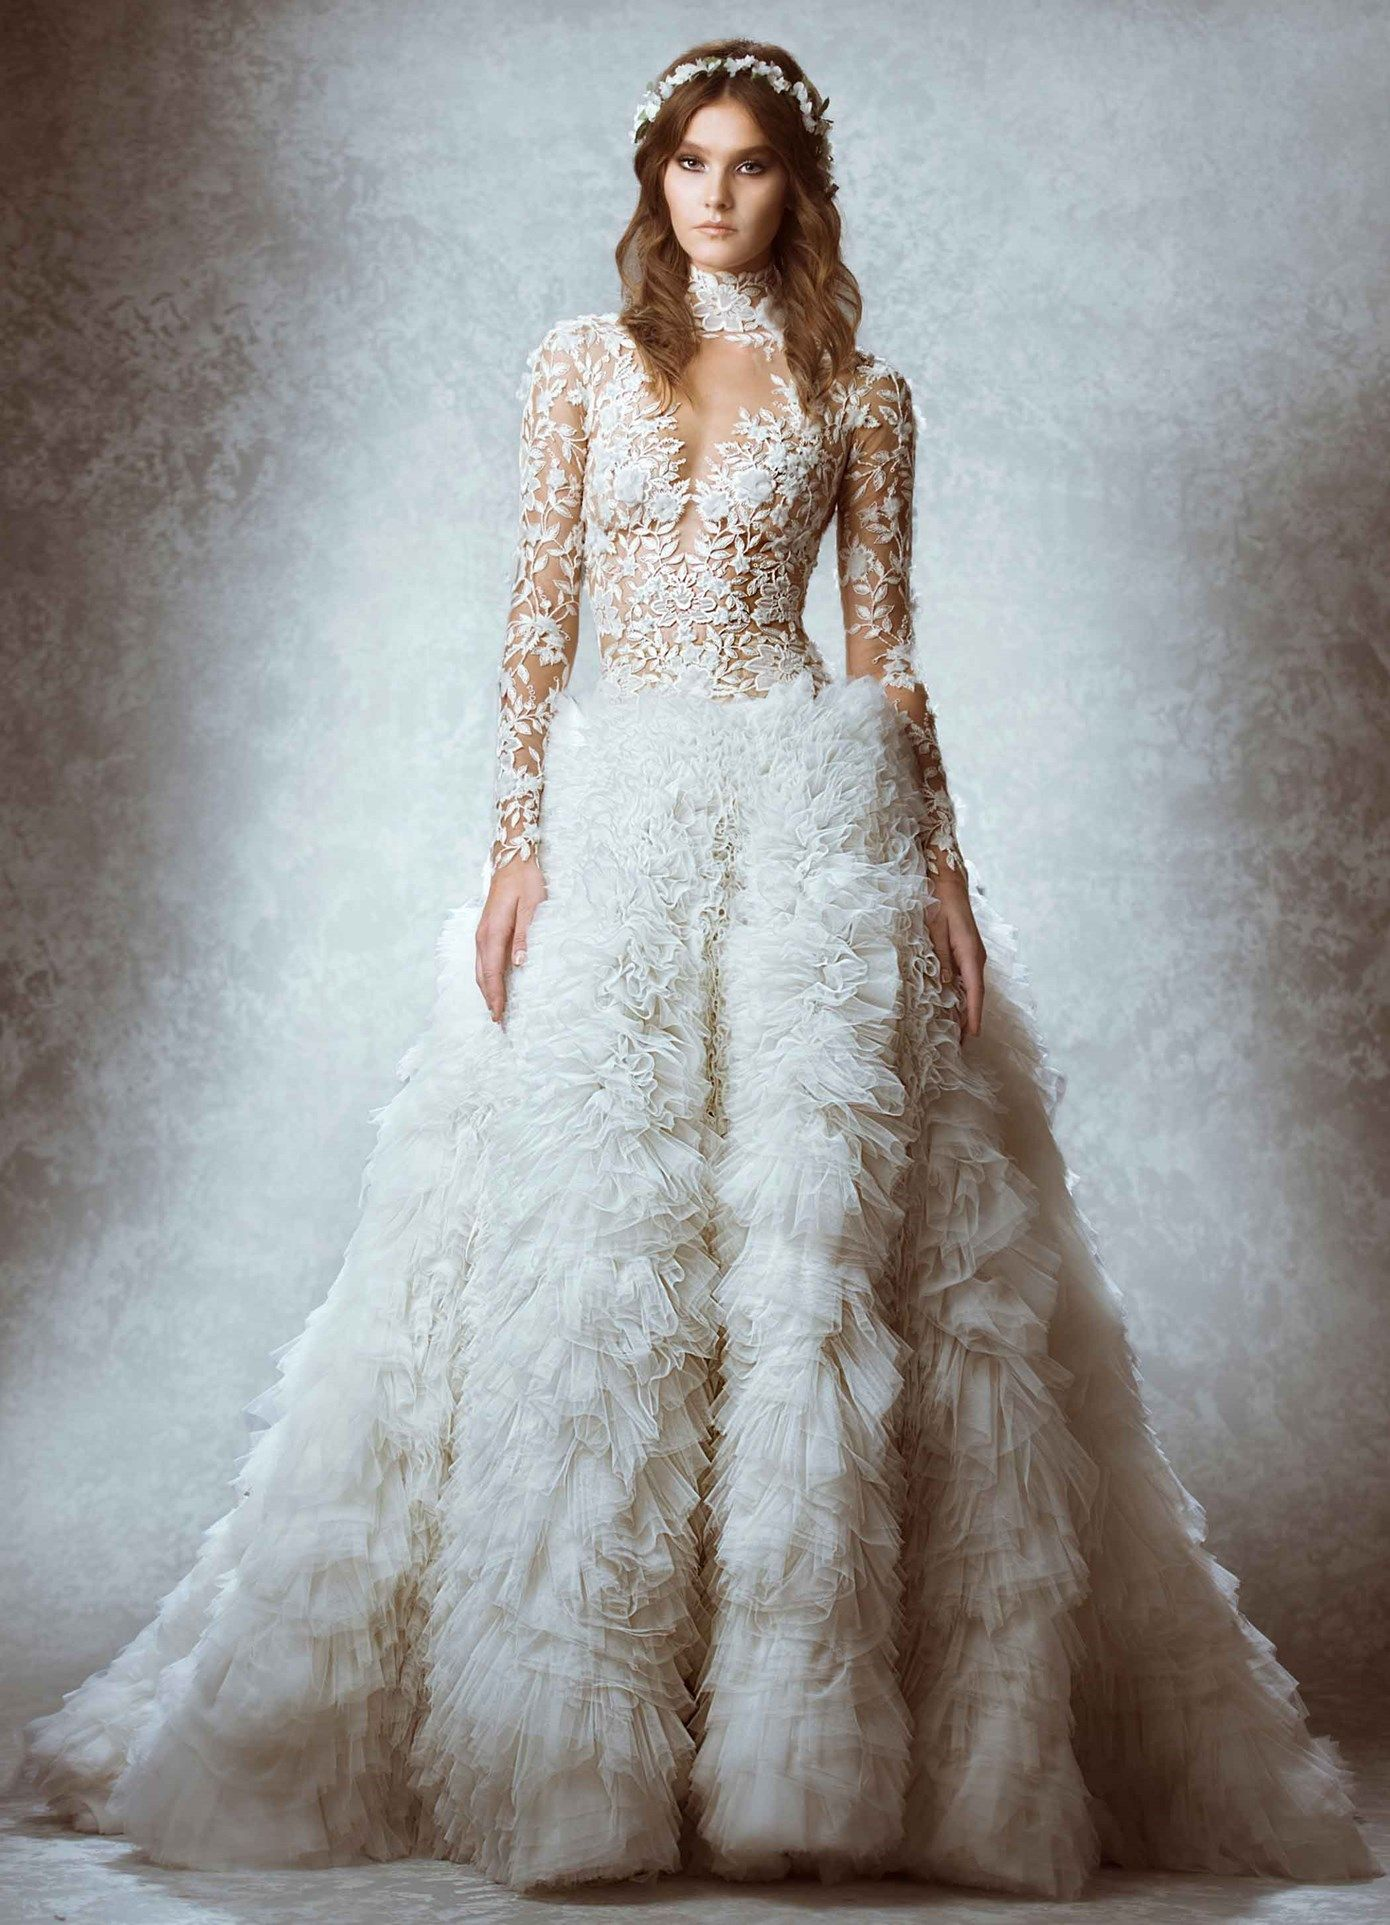 Naughty Gal Shoes : The Most Gorgeous Zuhair Murad Lace Bridal Fall ...